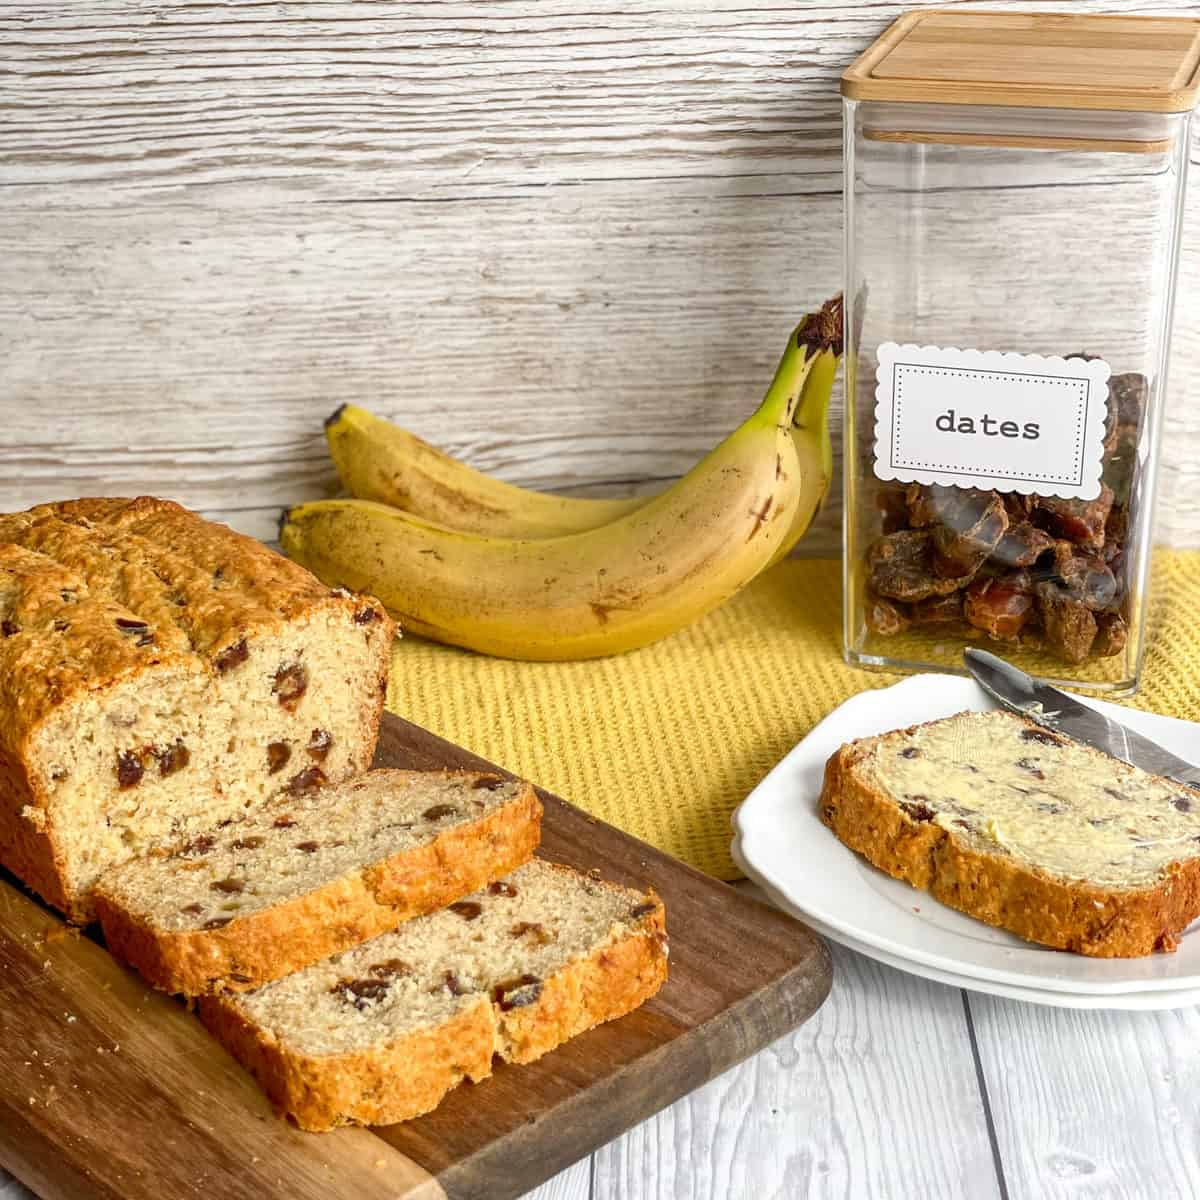 Container of Dates and fresh bananas next to a freshly baked loaf of banana and date loaf